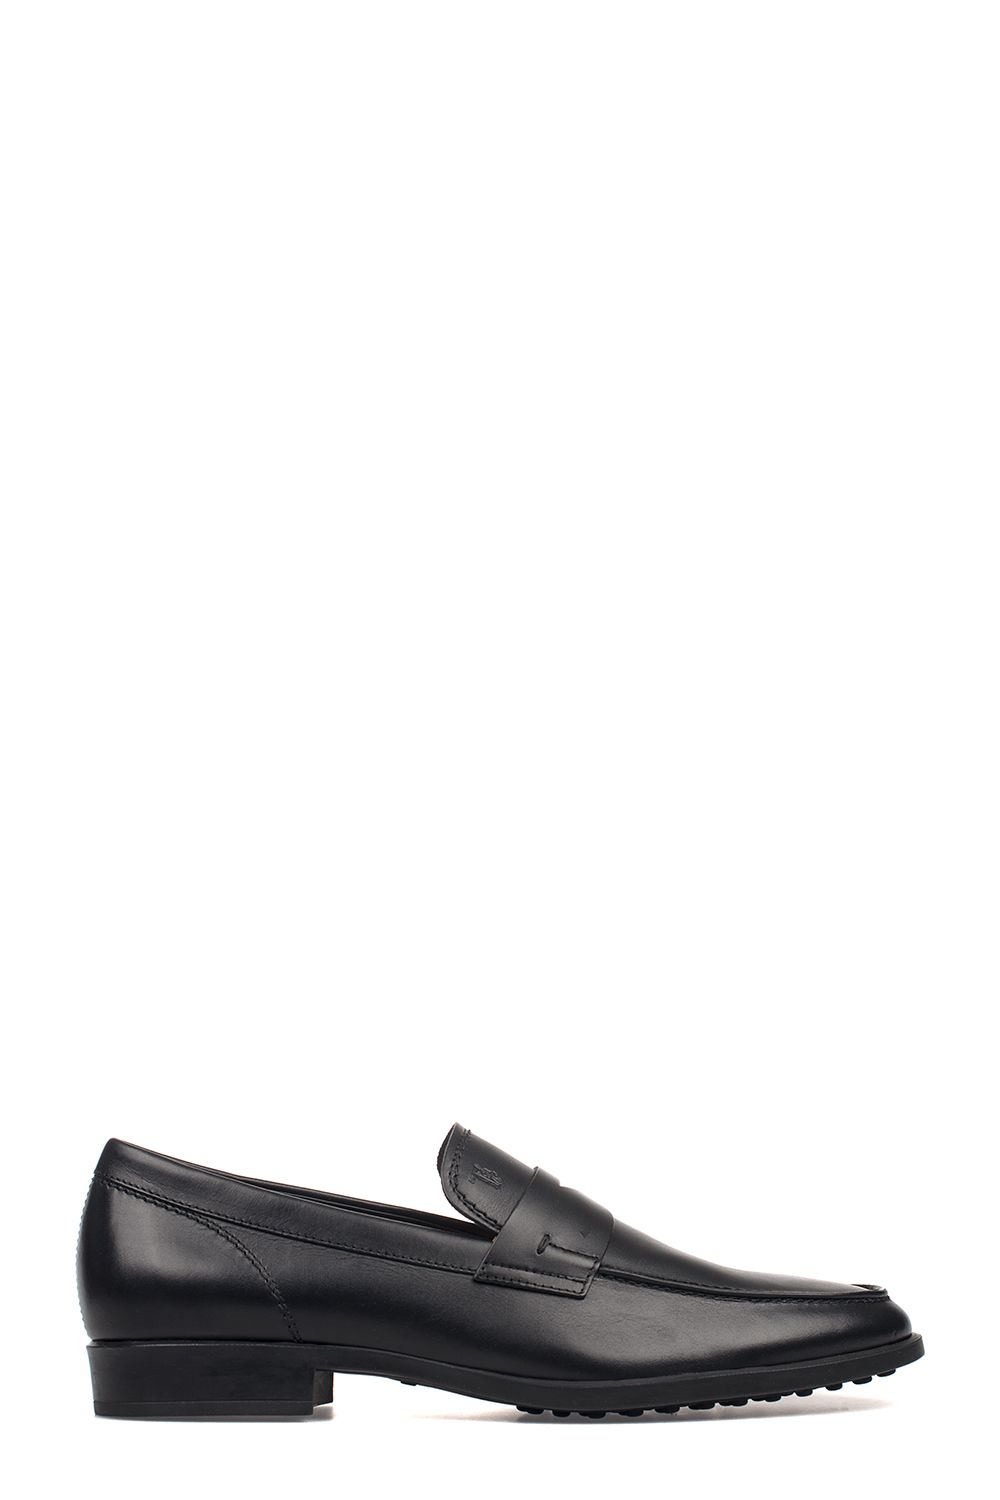 Tod's Penny Loafer D00640 Smooth Leather Logo Black